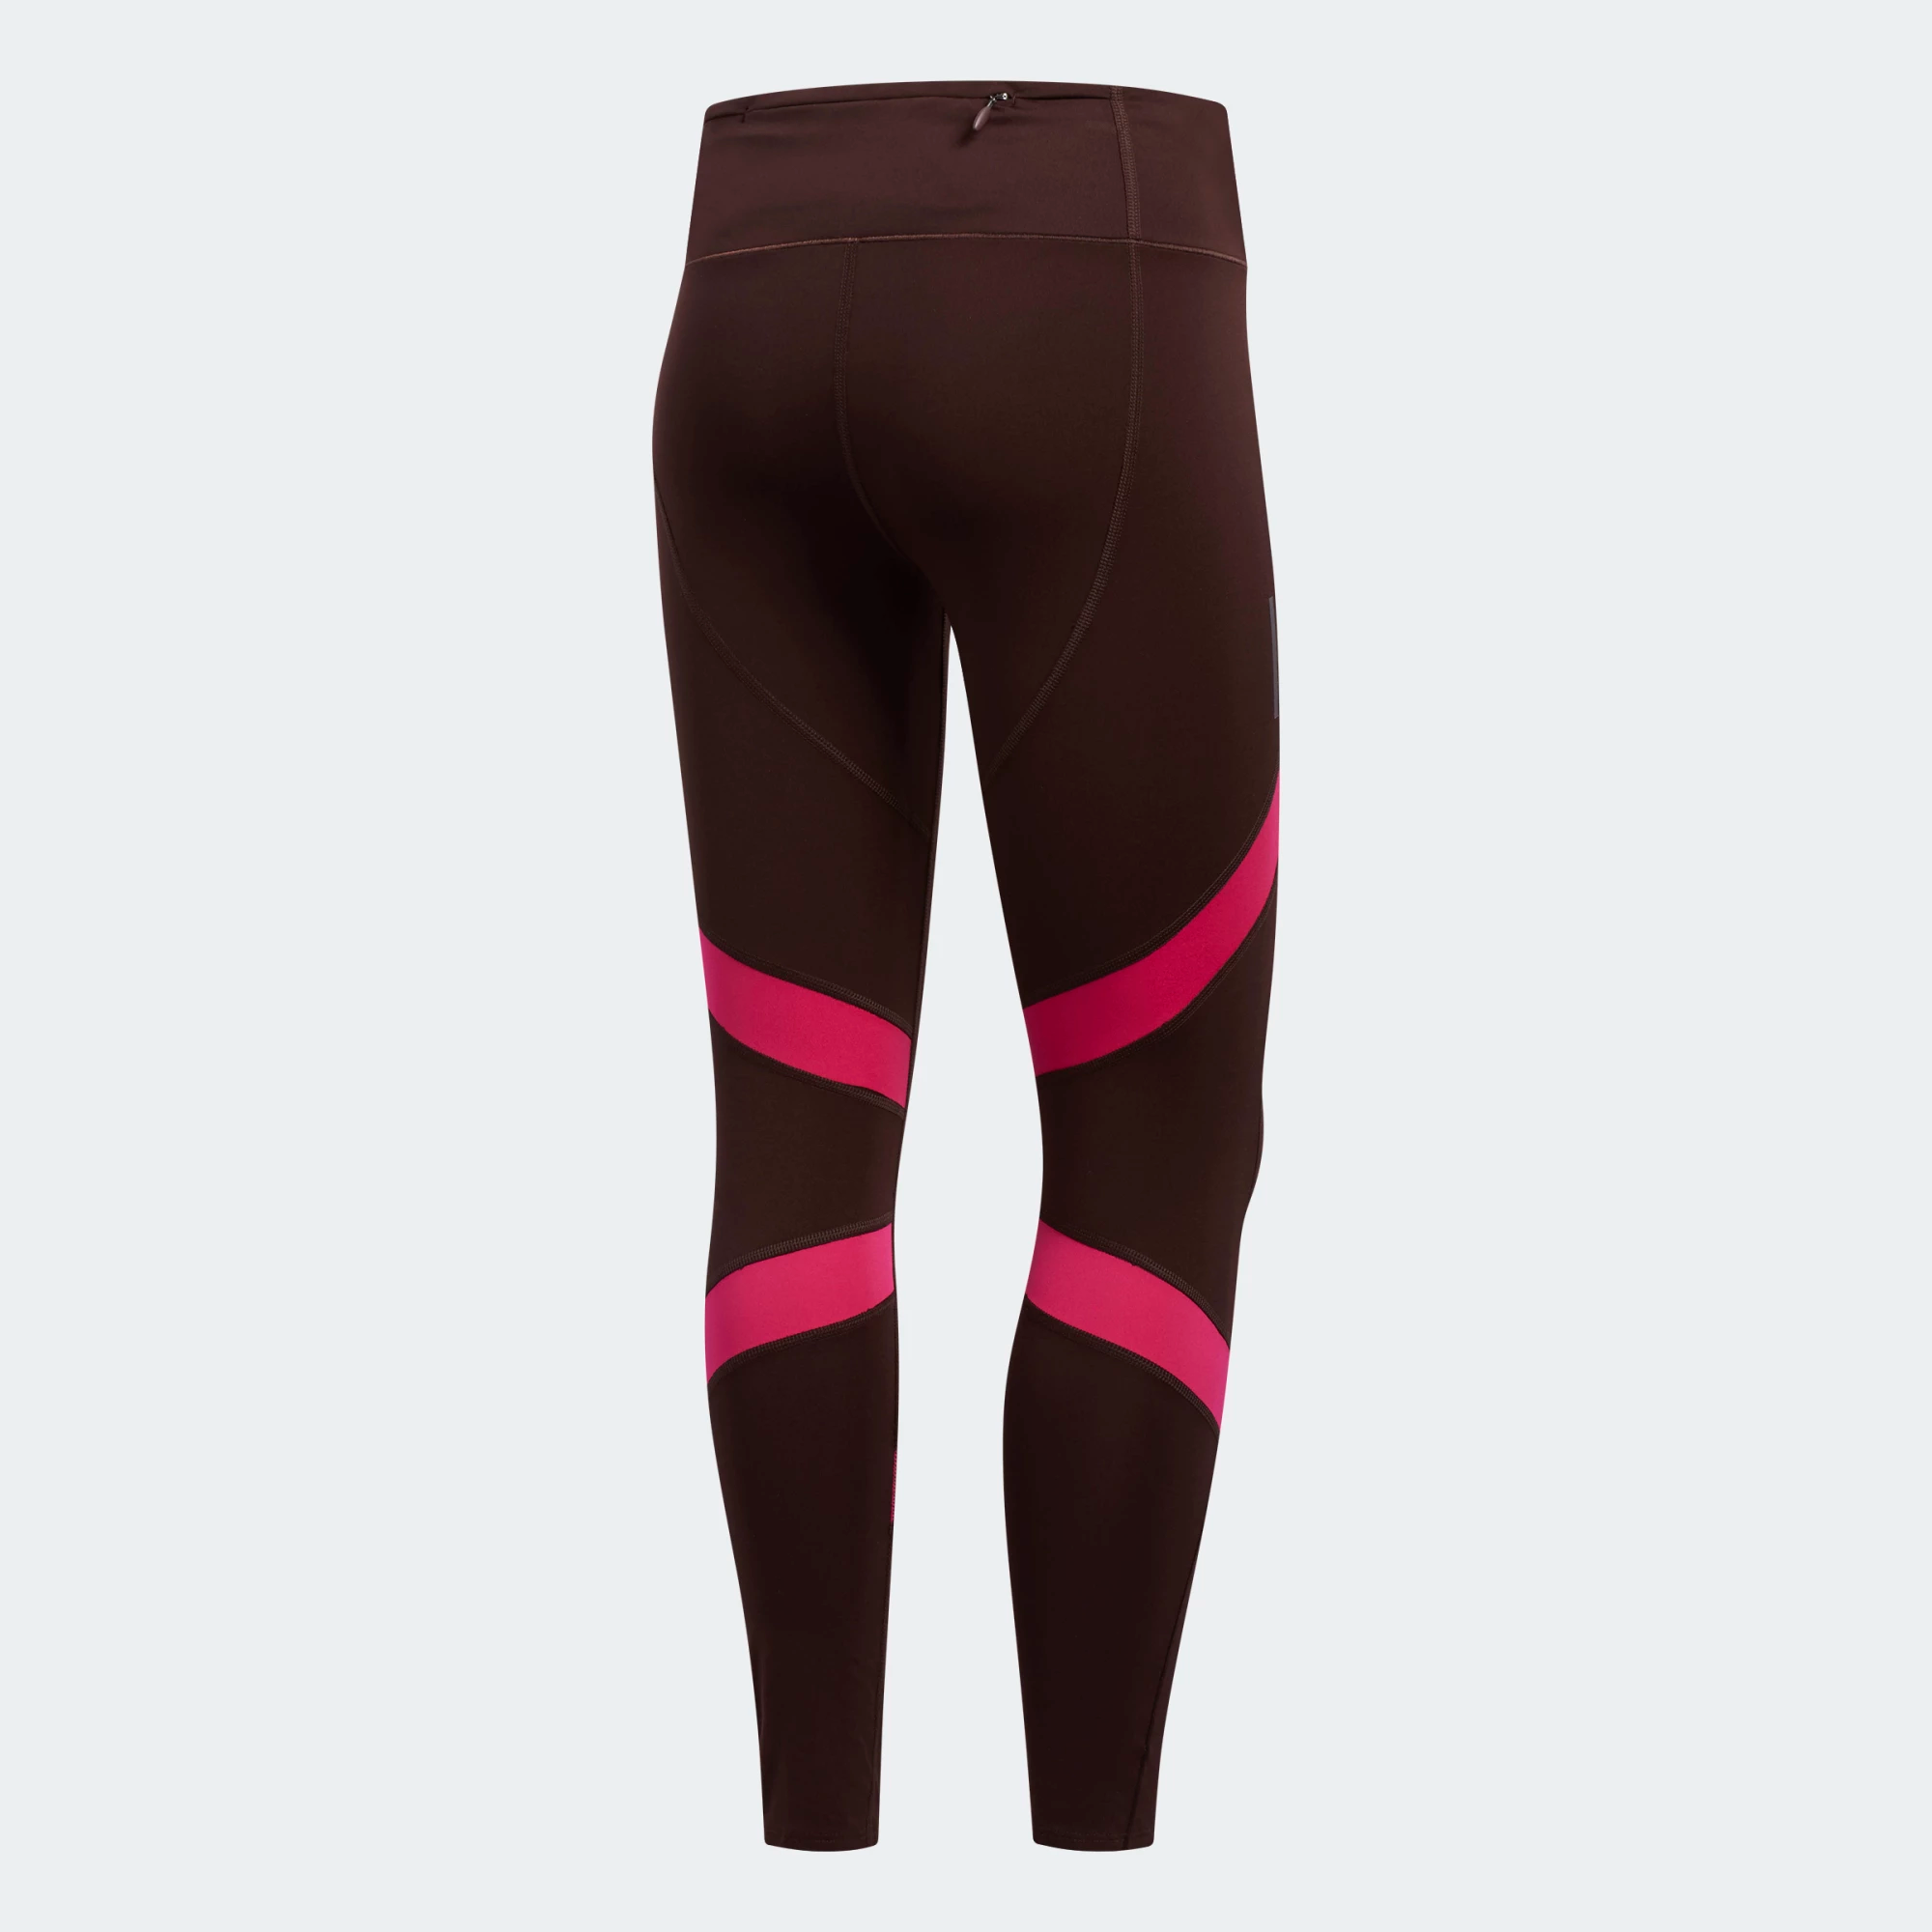 bdf5c13ba9354 Workout Leggings With Pockets On The Side For Phone